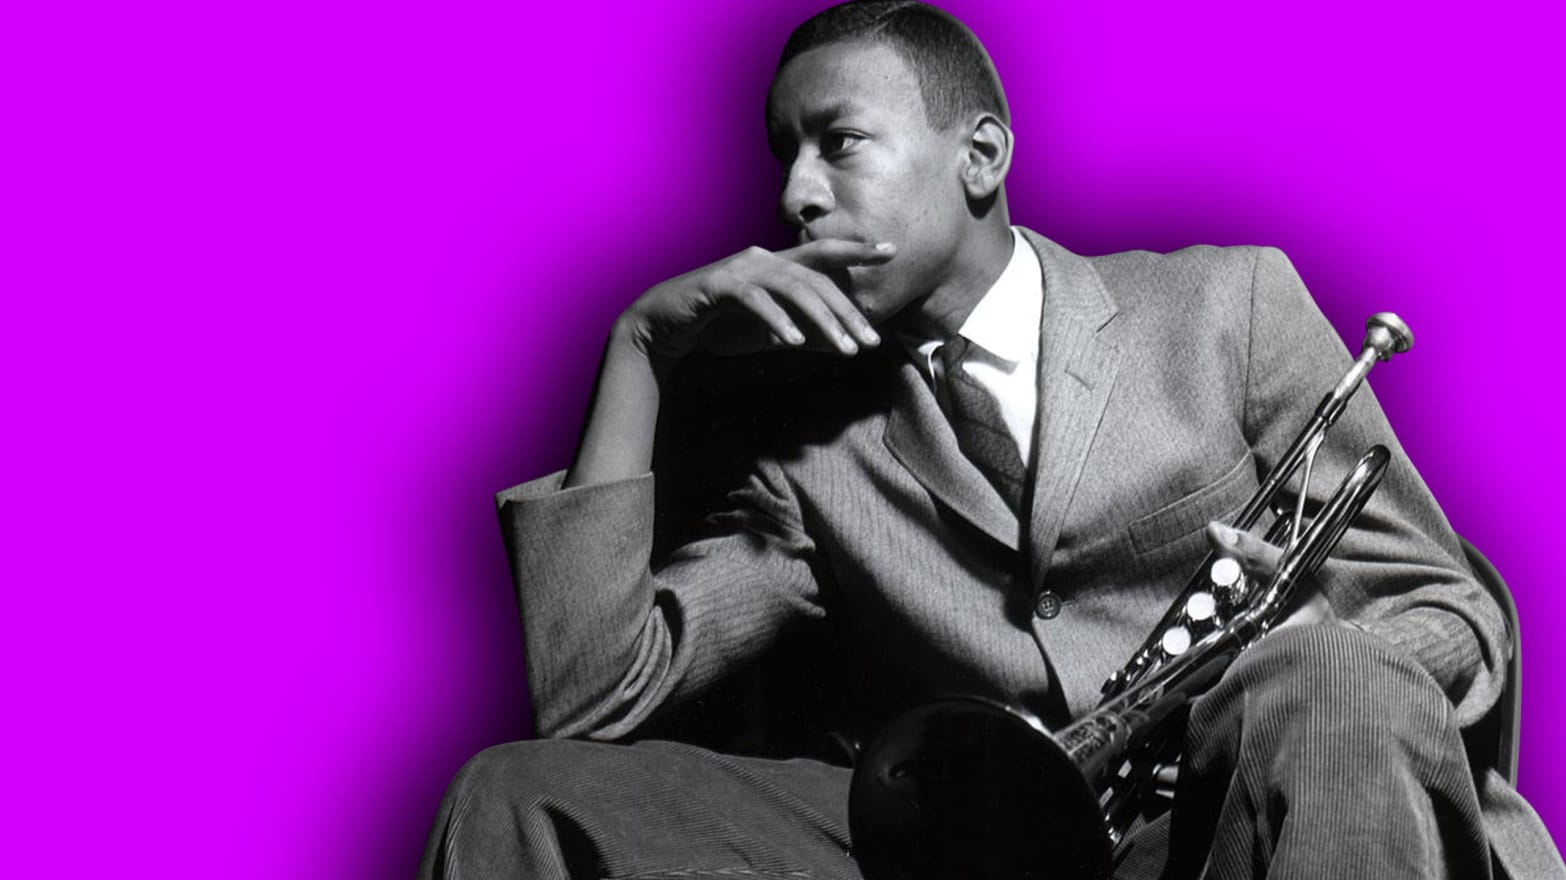 The Haunting Murder of a Jazz Legend in the Making